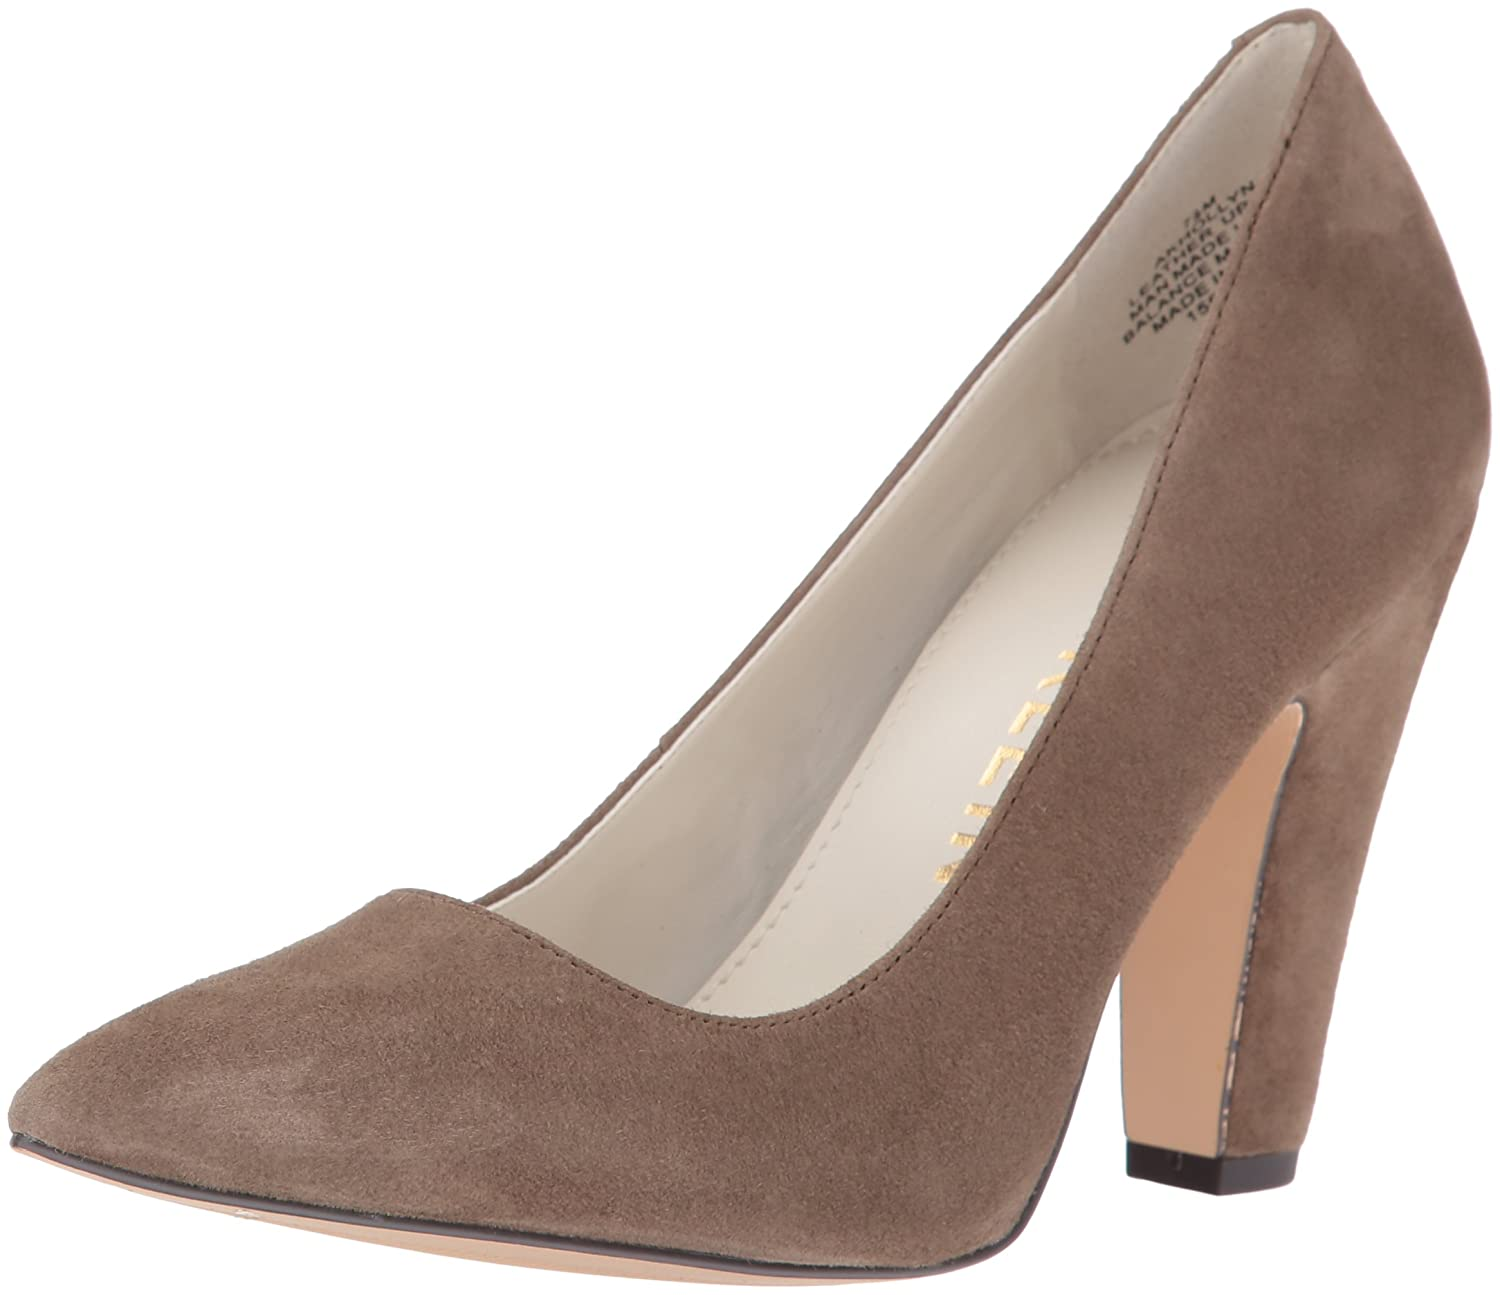 Anne Klein Women's Hollyn Suede Dress Pump B01KPAOK6E 8 B(M) US|Taupe